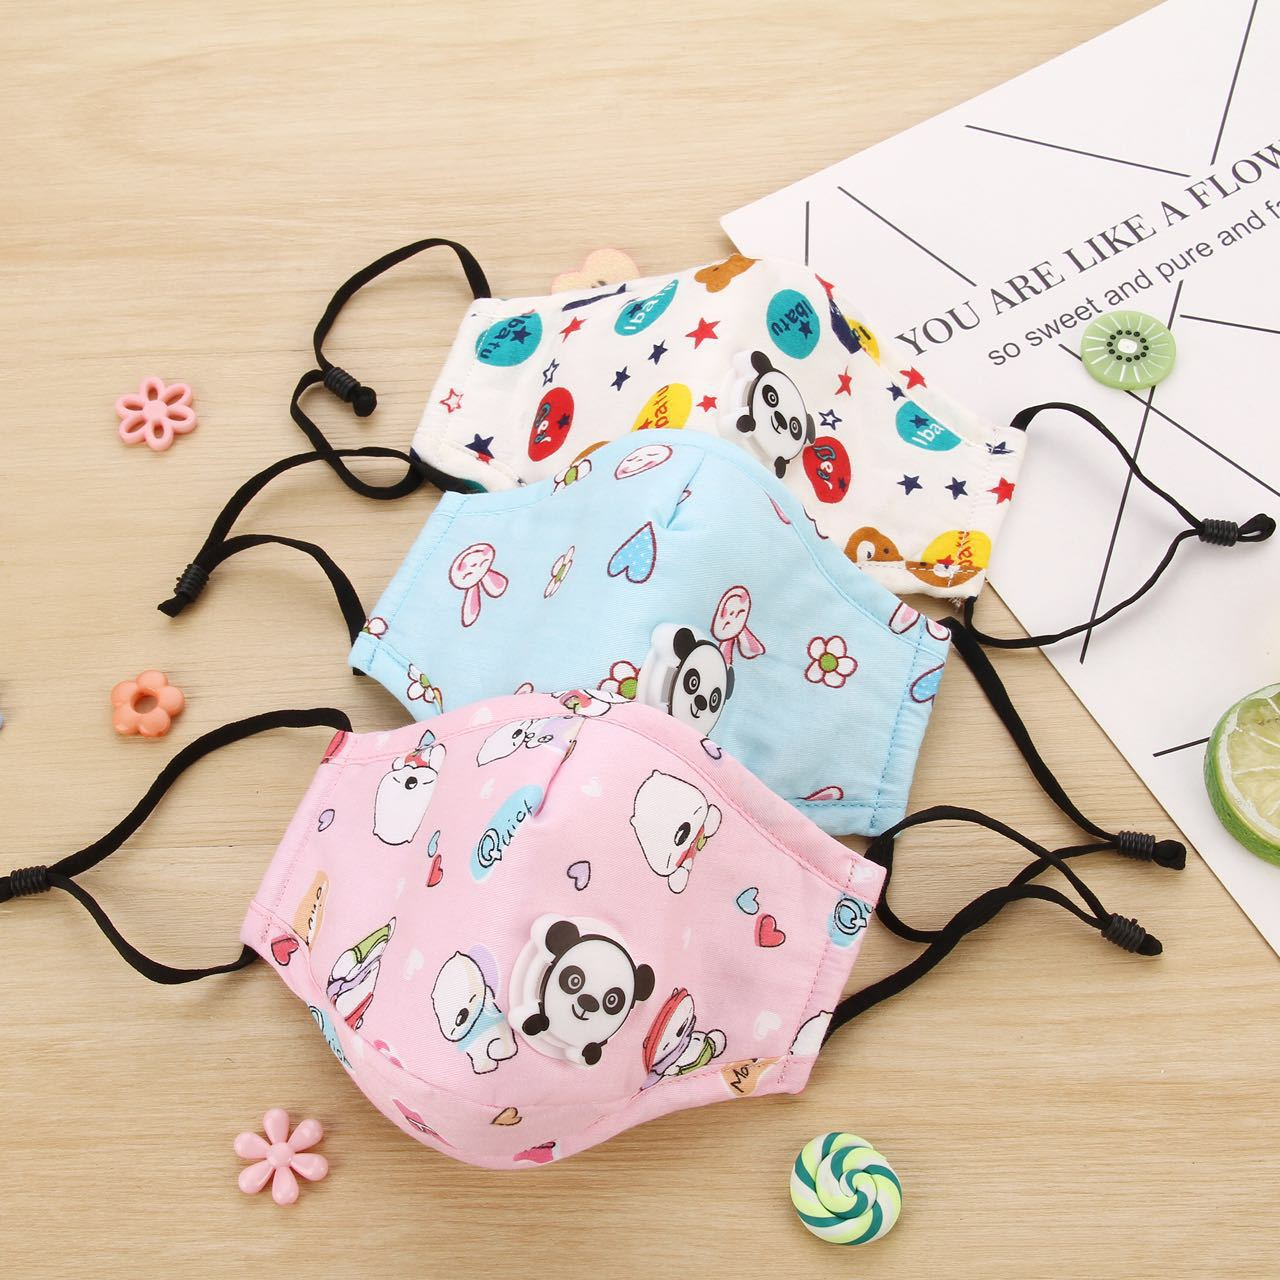 Kid Mask Cute Cotton Mouth Face Mask PM2.5 Breathing Valve Toddler Kids Anti Dust Reusable Washable Adjustable Mask